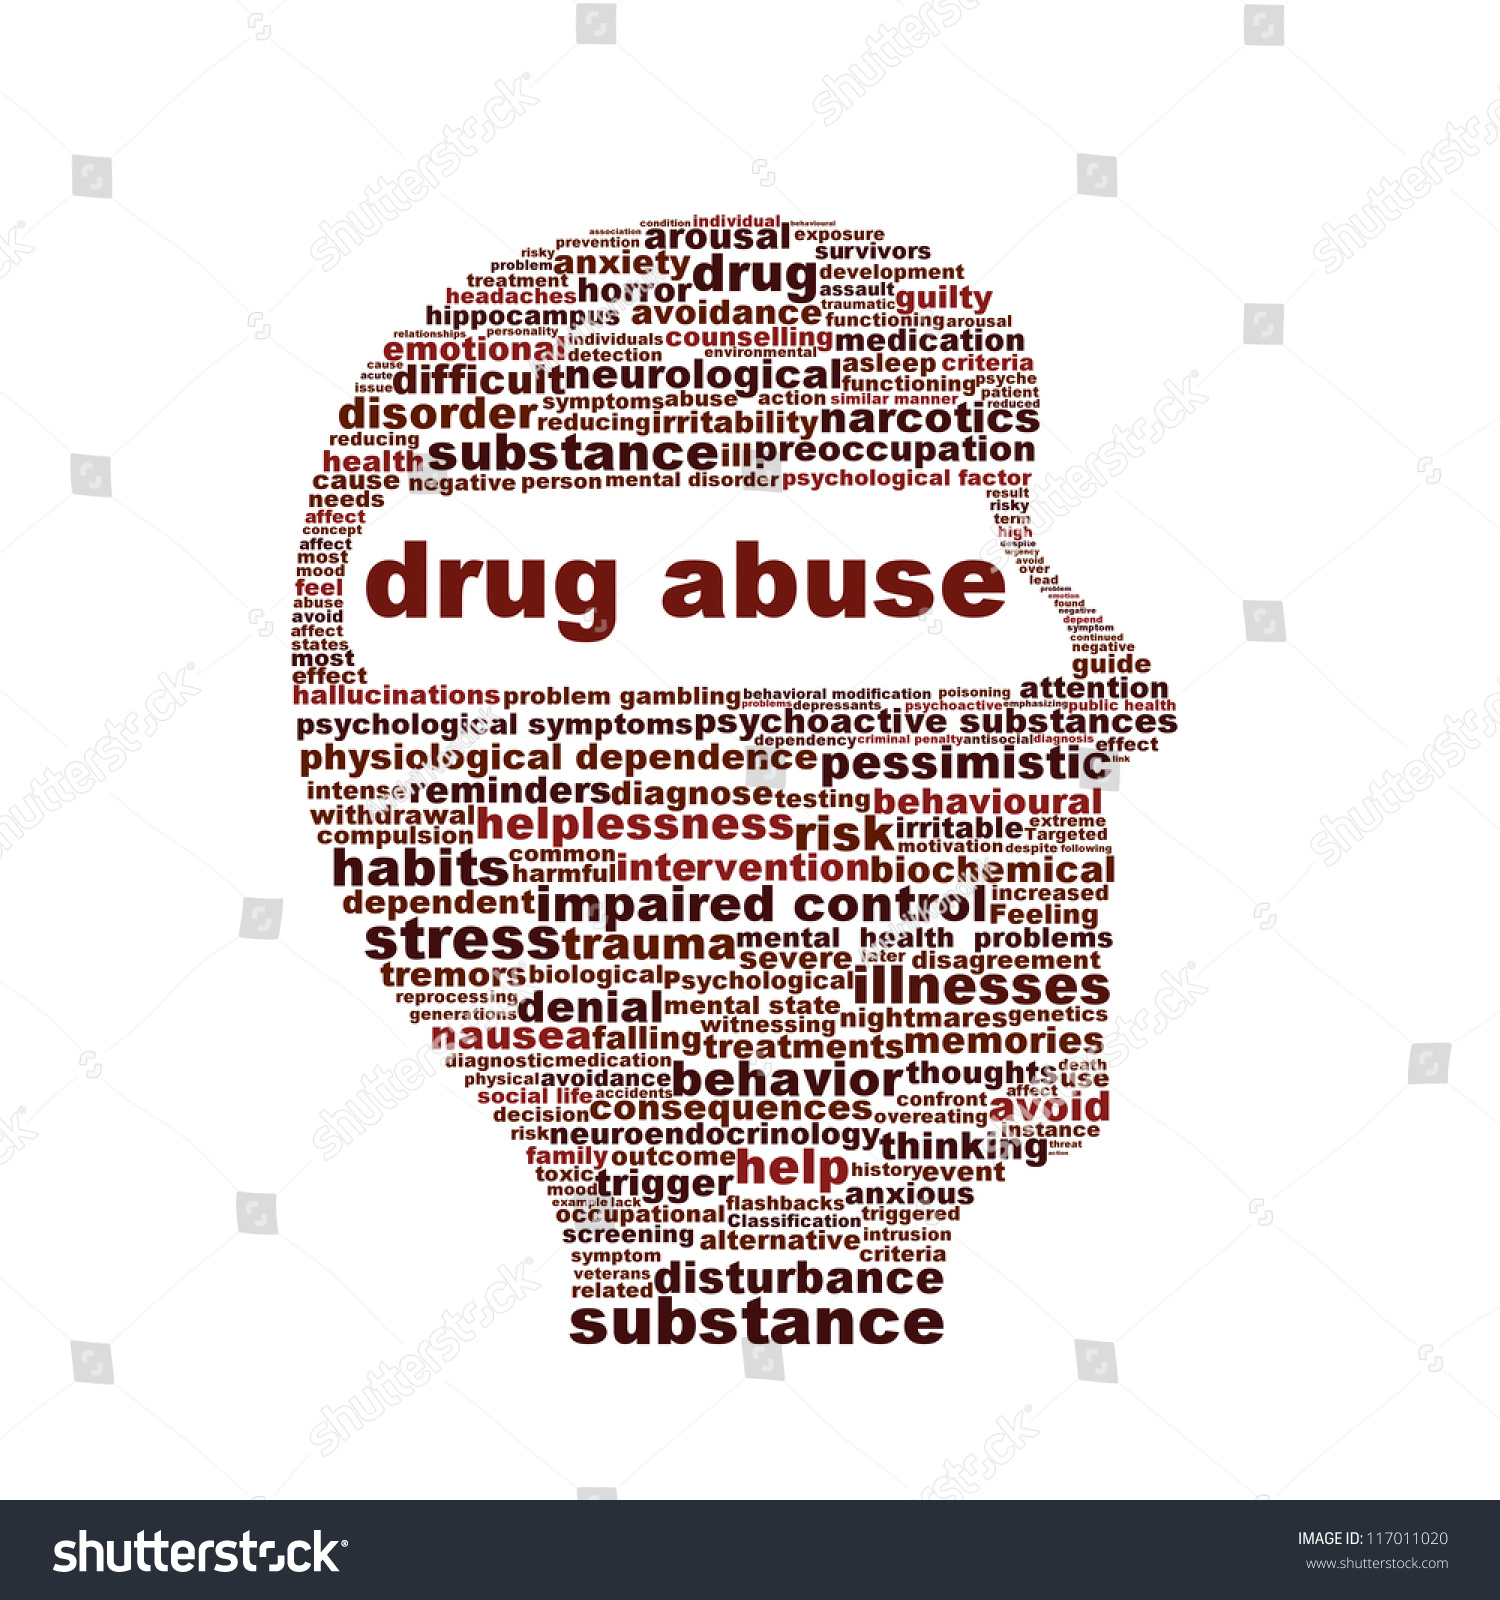 Drug abuse health problems symbol design. Drug addiction medical icon ...